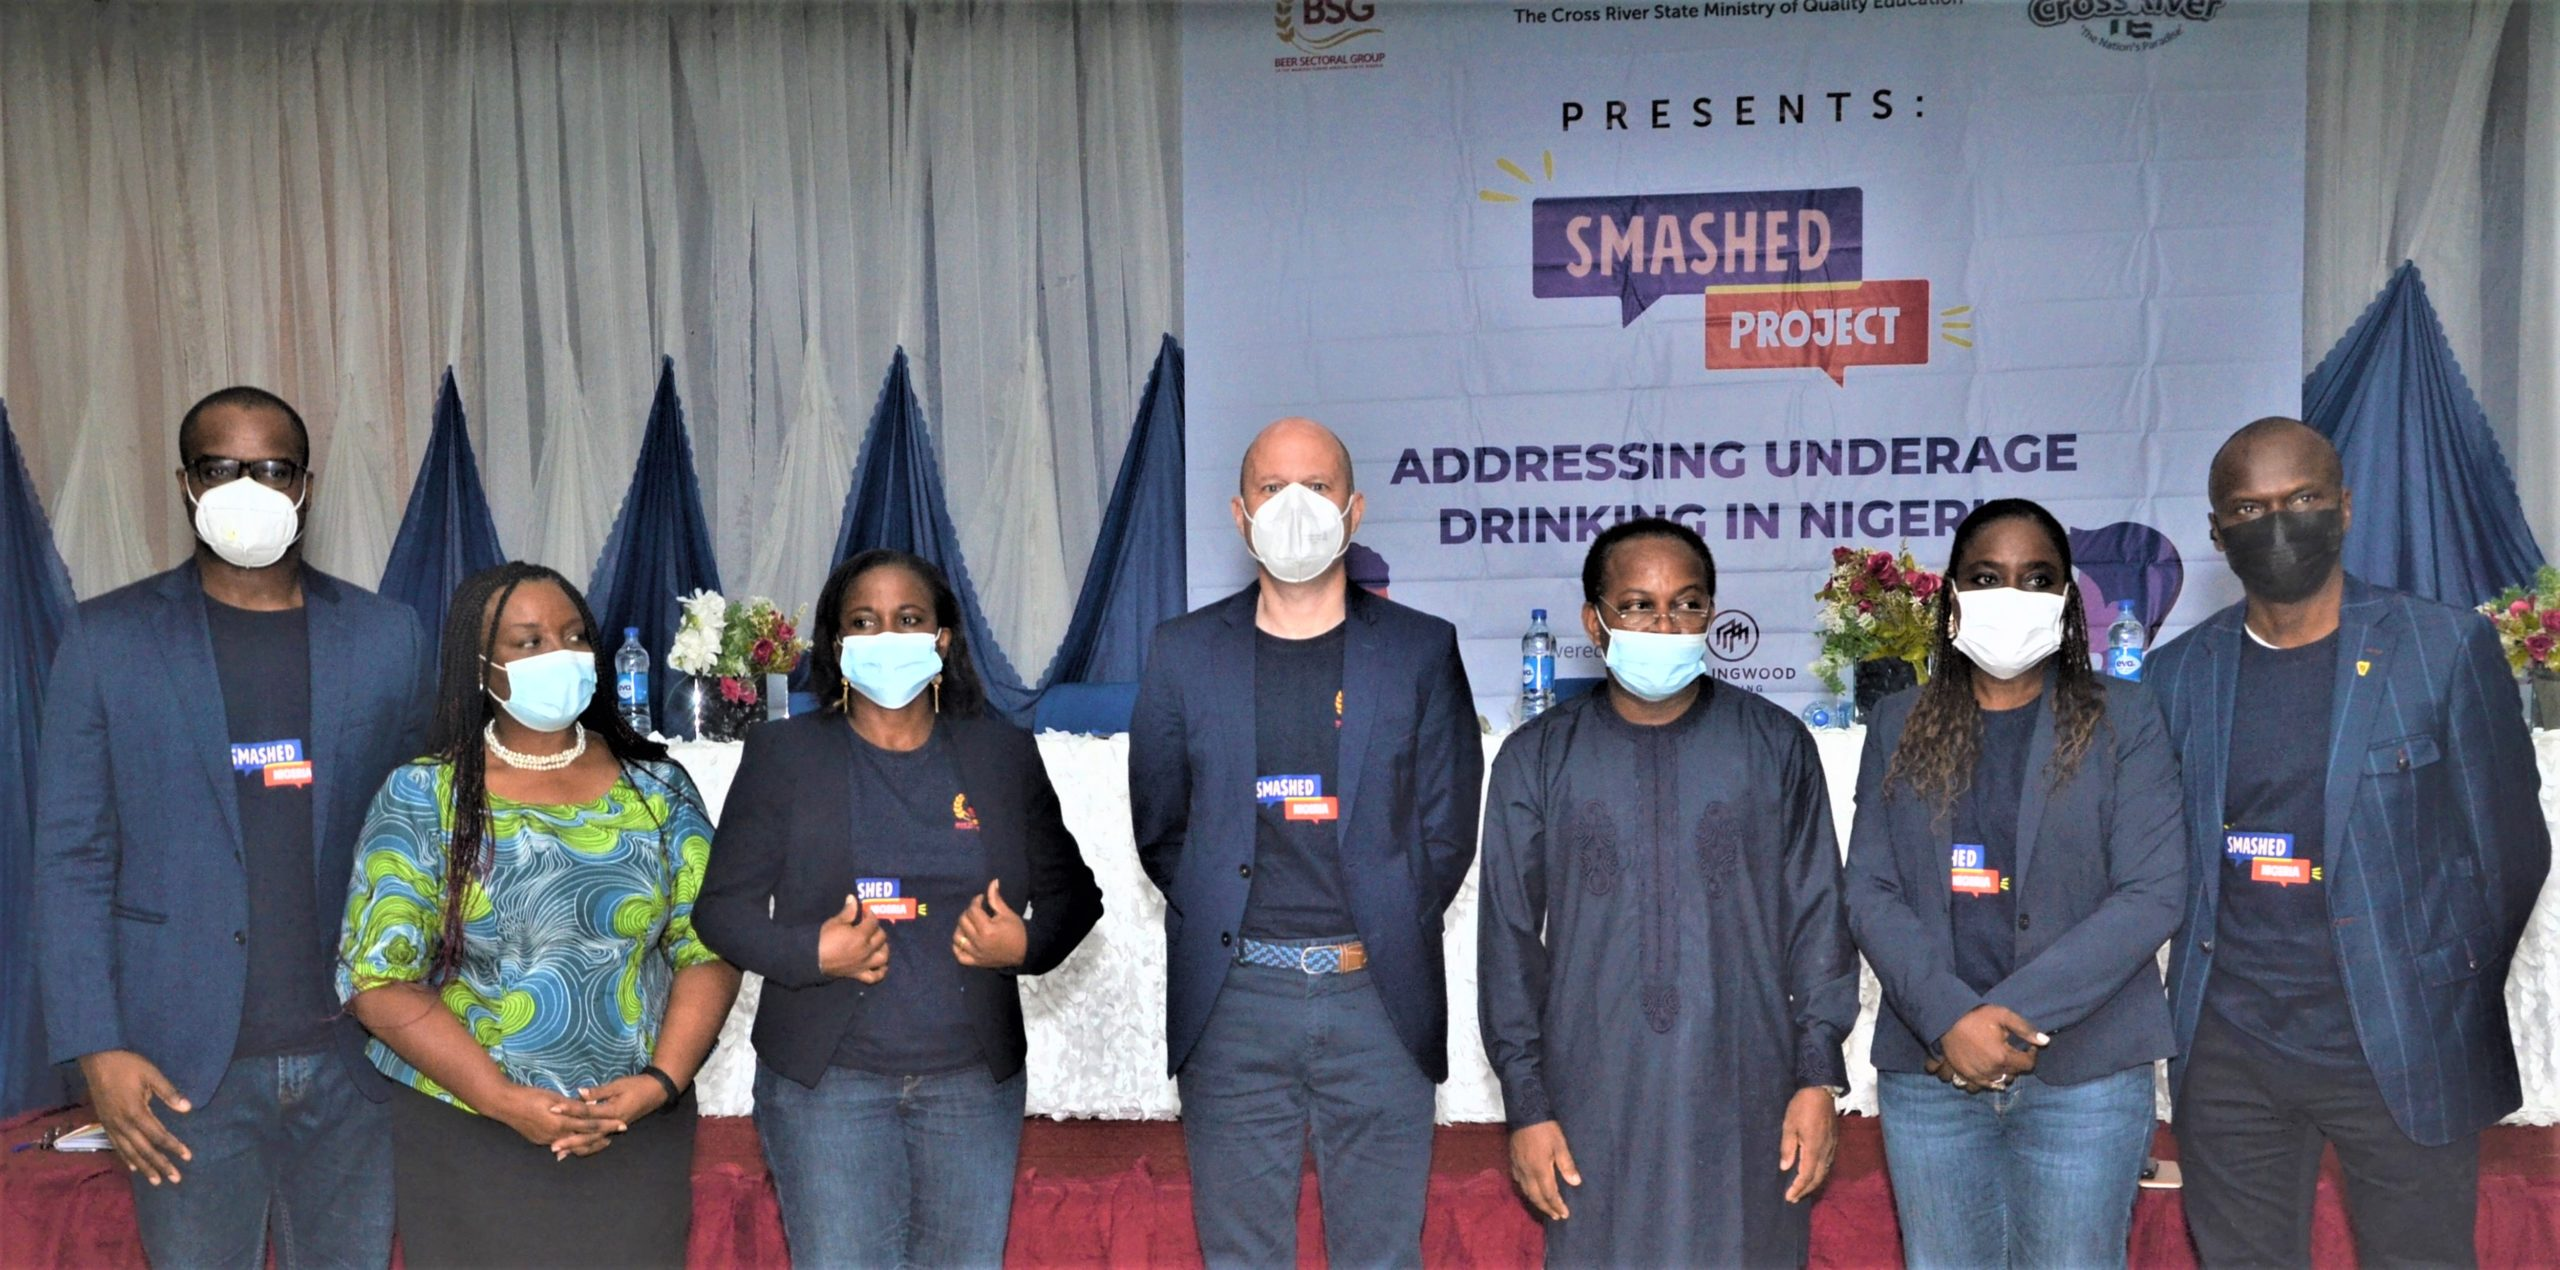 L-R: Tony Eneh, Executive Secretary, Beer Sectoral Group (BSG); Ayo Jaiyesimi, CEO, Thespian Family Theatre & Production; Temitope Oguntokun, Legal and Corporate Affairs Director, International Breweries Plc (a member of the BSG); Jordi Borrut Bel, Chairman, Beer Sectoral Group (BSG) of MAN & MD/CEO Nigerian Breweries Plc; Hon. Dr. Godwin E. Amanke, Commissioner for Quality Education, Cross River State; Sade Morgan - Corporate Affairs Director - Nigerian Breweries (a member of the BSG) and Rotimi Odusola, Corporate Relations Director & Company Secretary, Guinness Nigeria Plc (a member of the BSG) at the Relaunch of the BSG's SMASHED Project (Campaign against Underage Drinking) recently in Calabar, Cross River State.